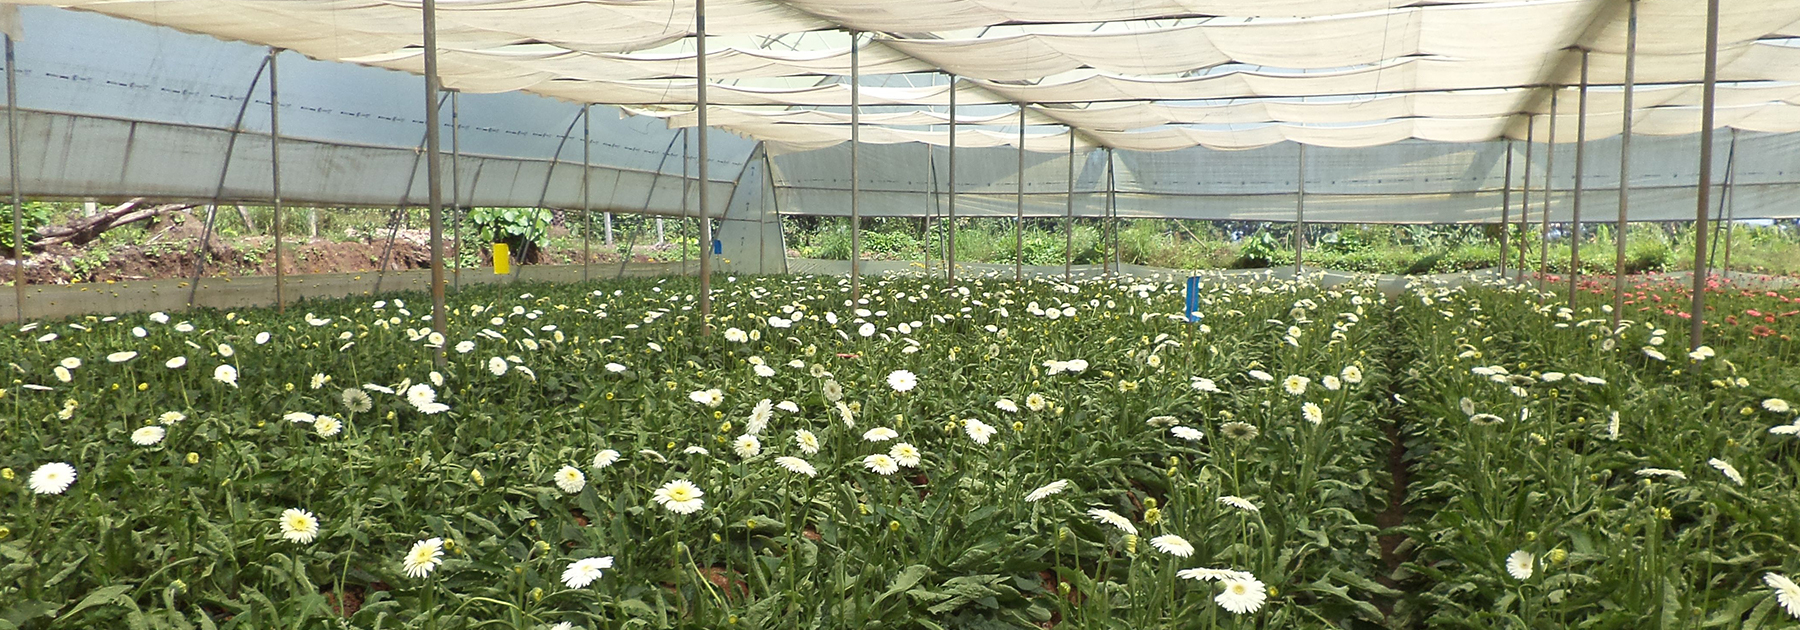 Gerbera Cultivation-in Poly-house, Dr. Rajendra Prasad Central Agriculture University. (Neerajk.bit, licensed under CC BY-SA 4.0)